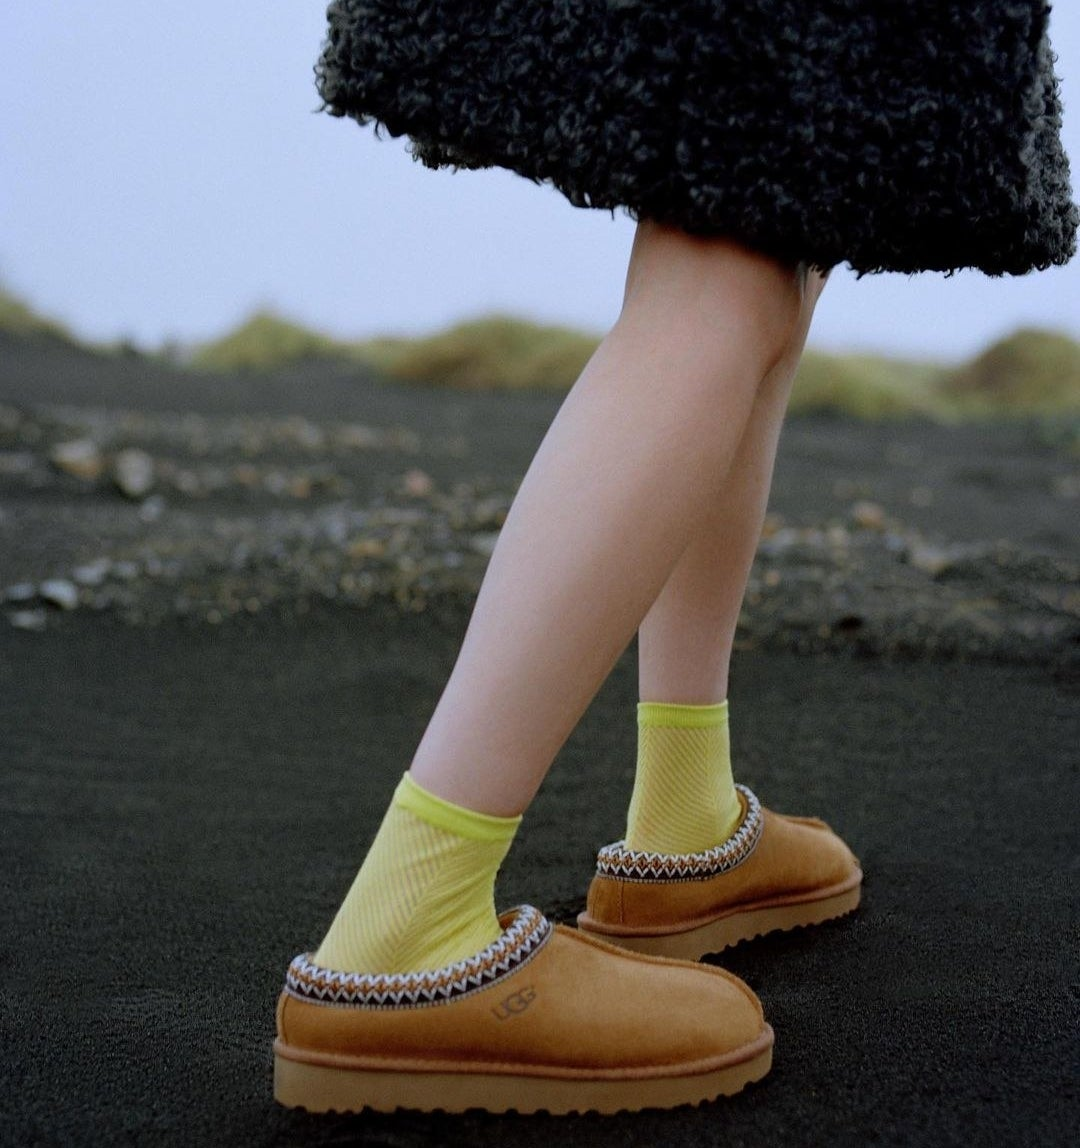 A person wearing Ugg slippers with socks